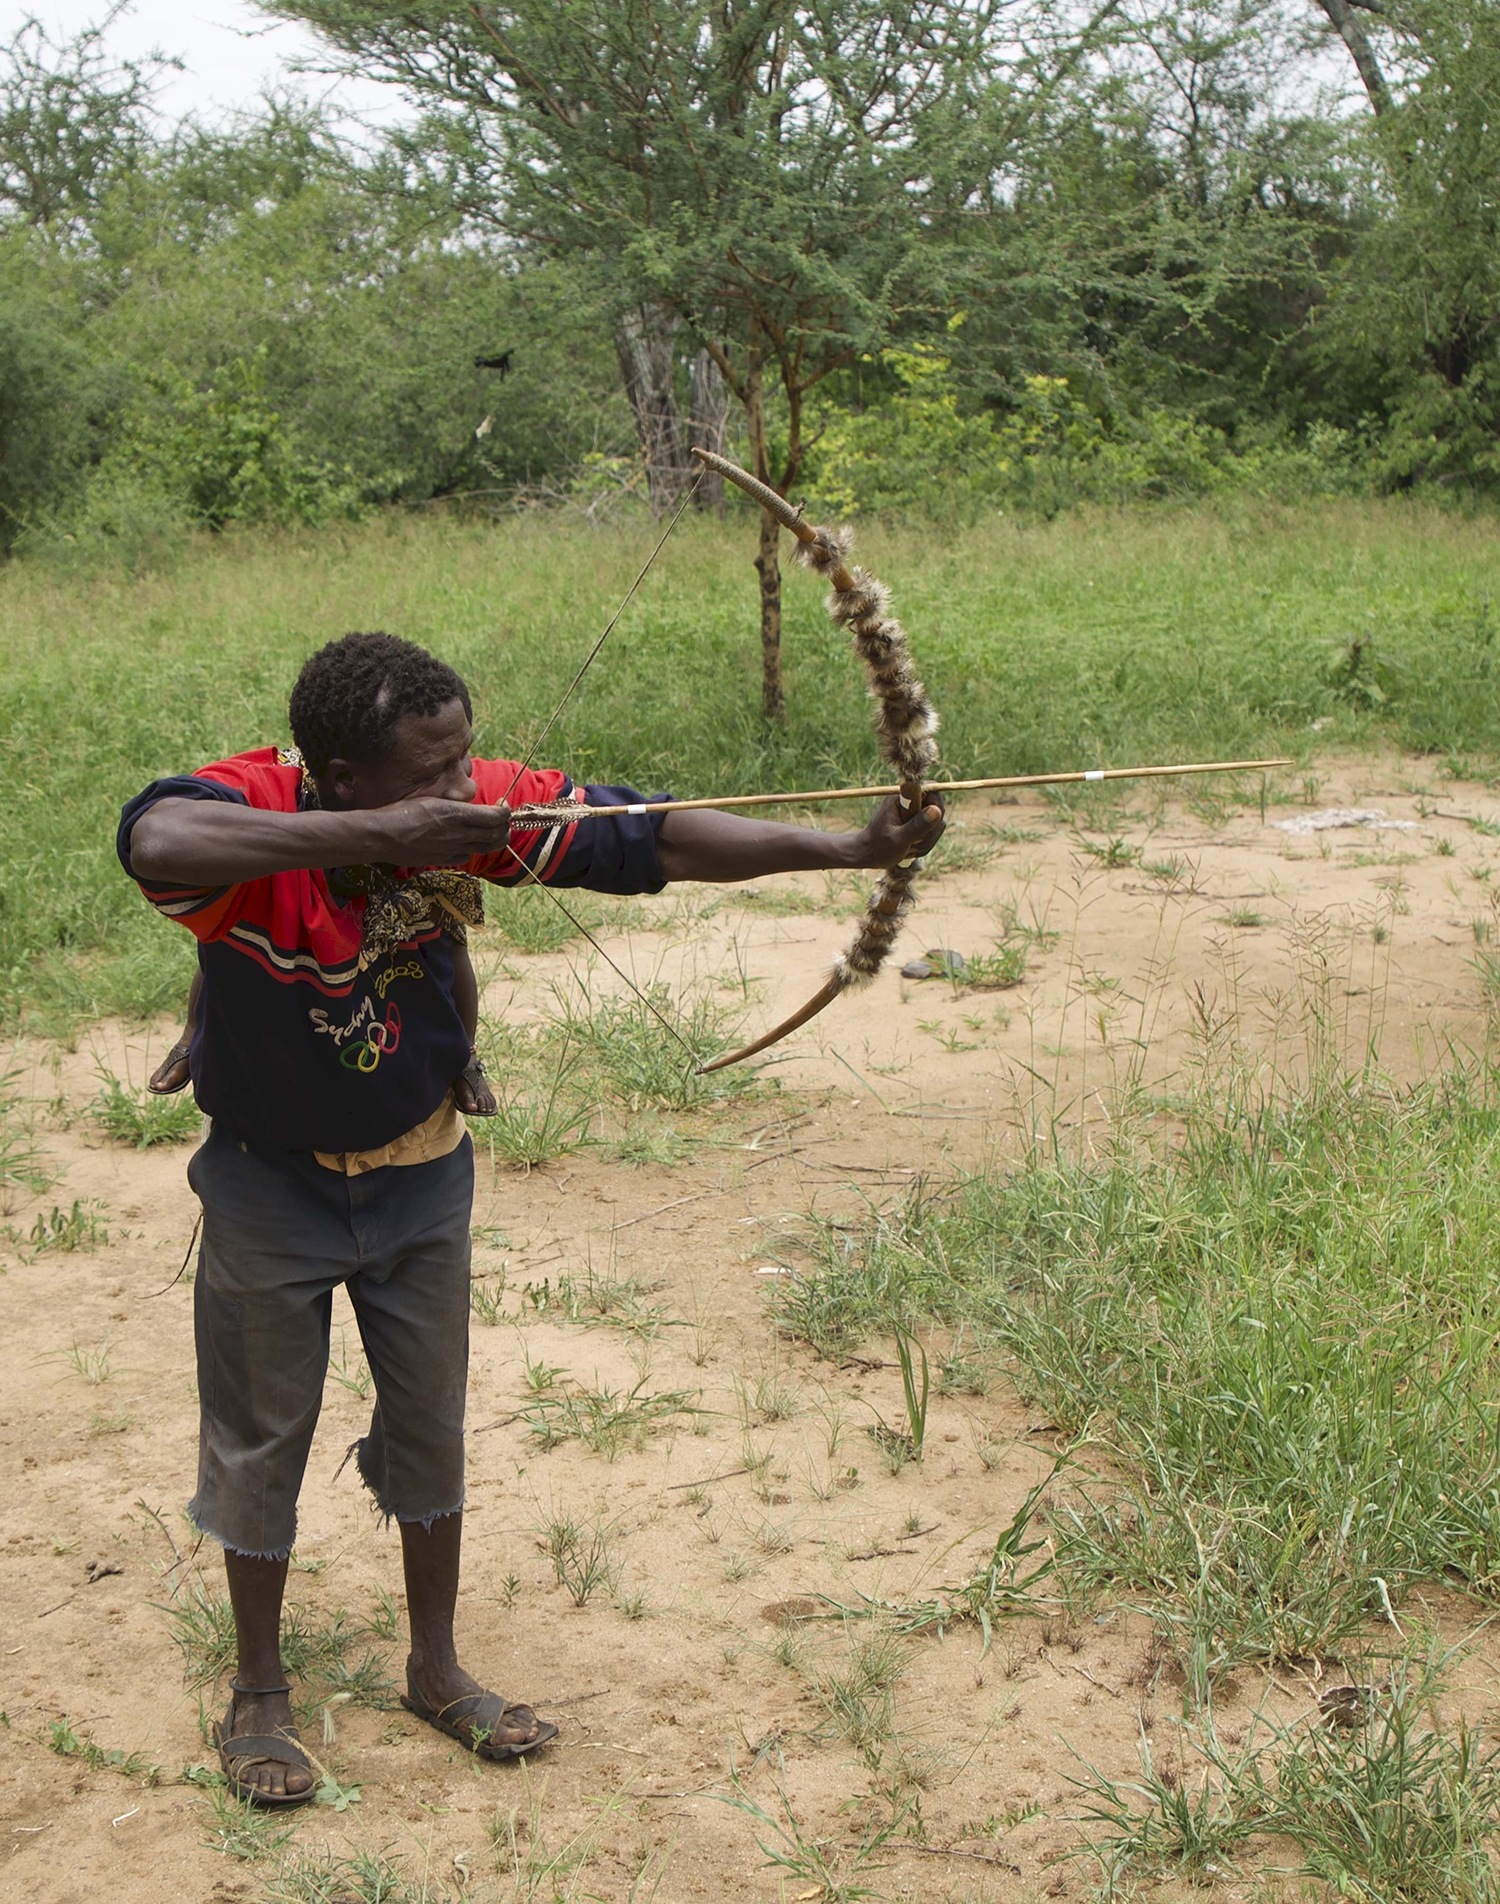 Hadza man with bow